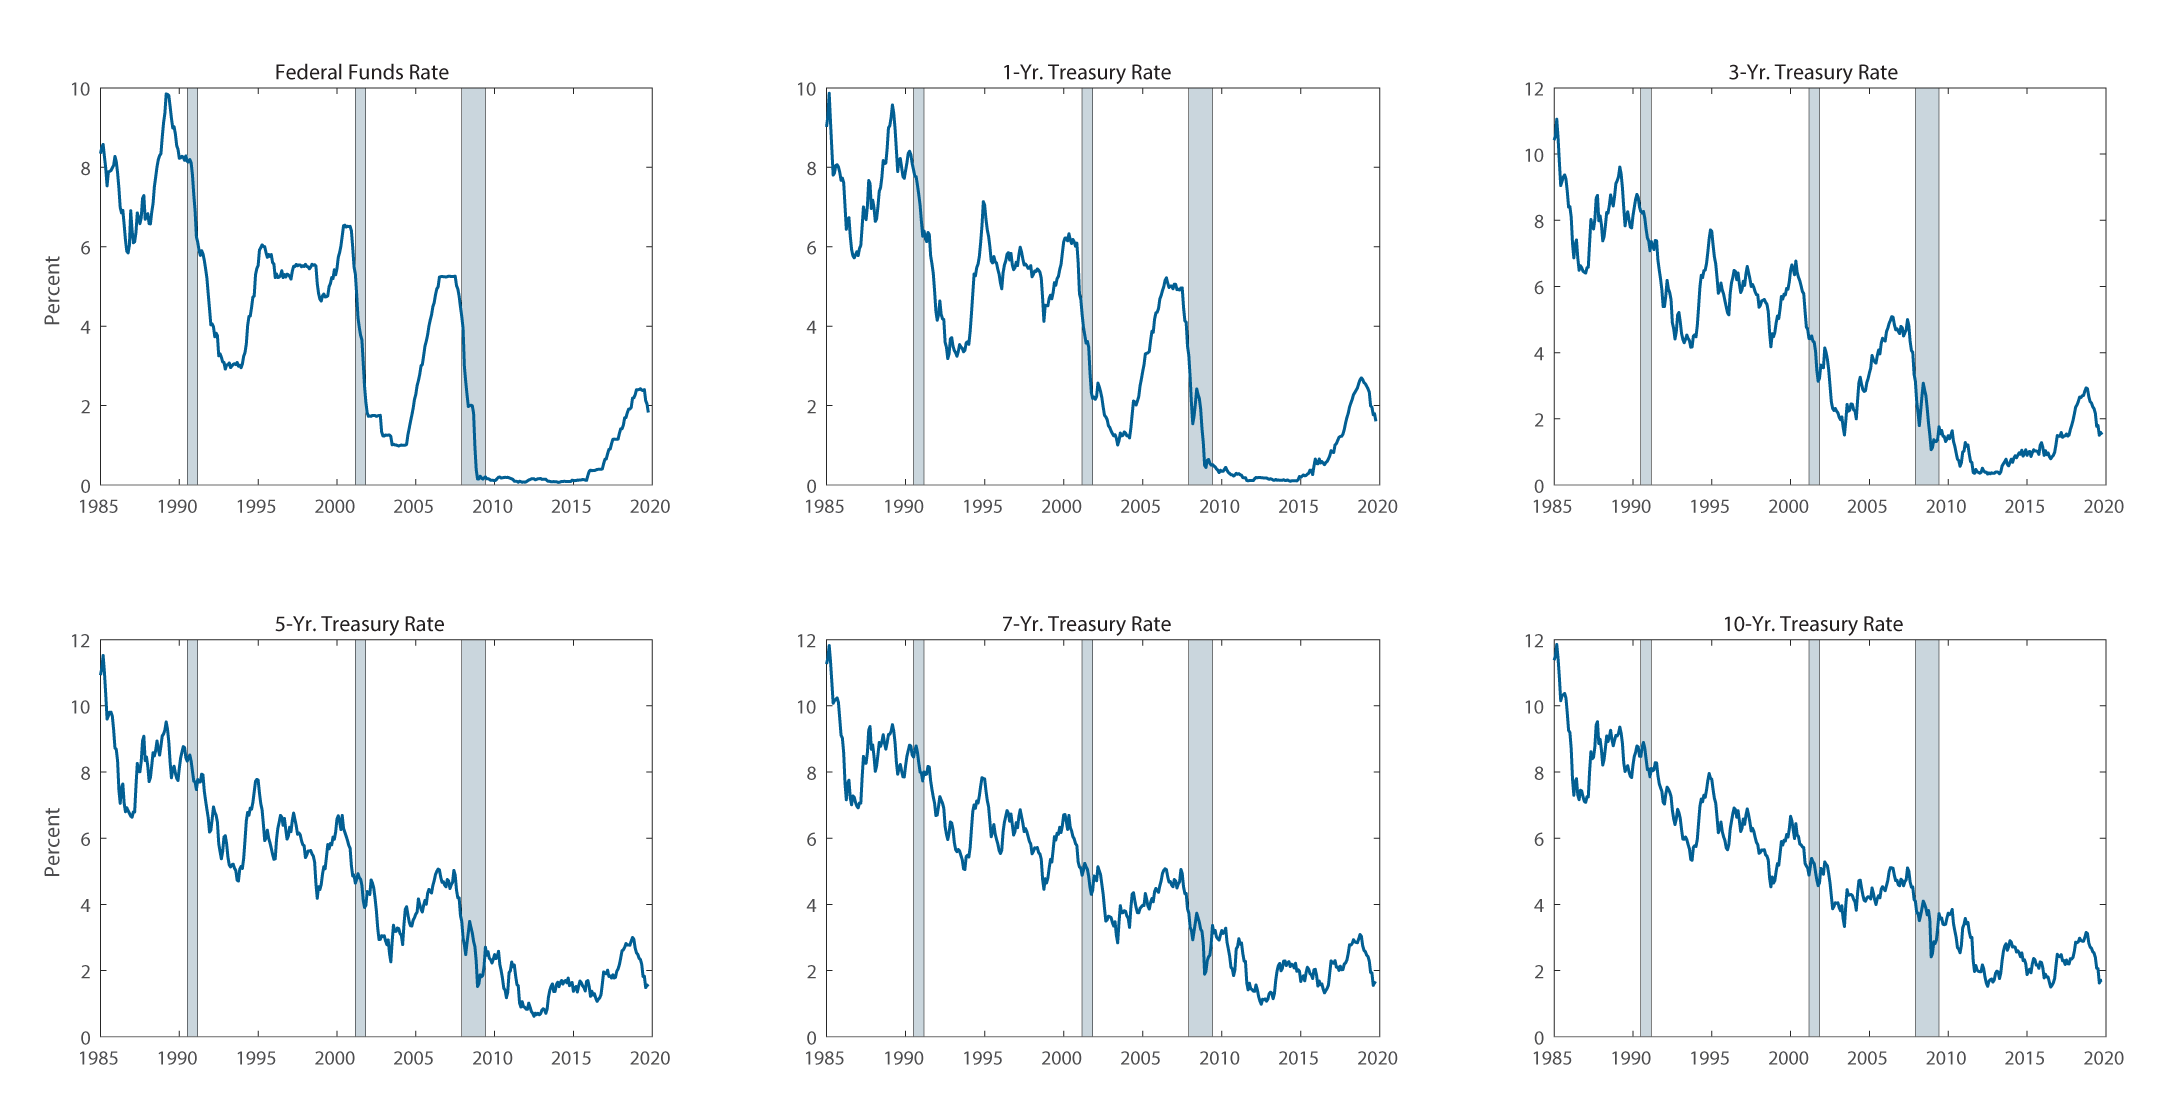 Figure 1. Nominal Interest Rates at Various Maturities in the United States. See accessible link for data description.